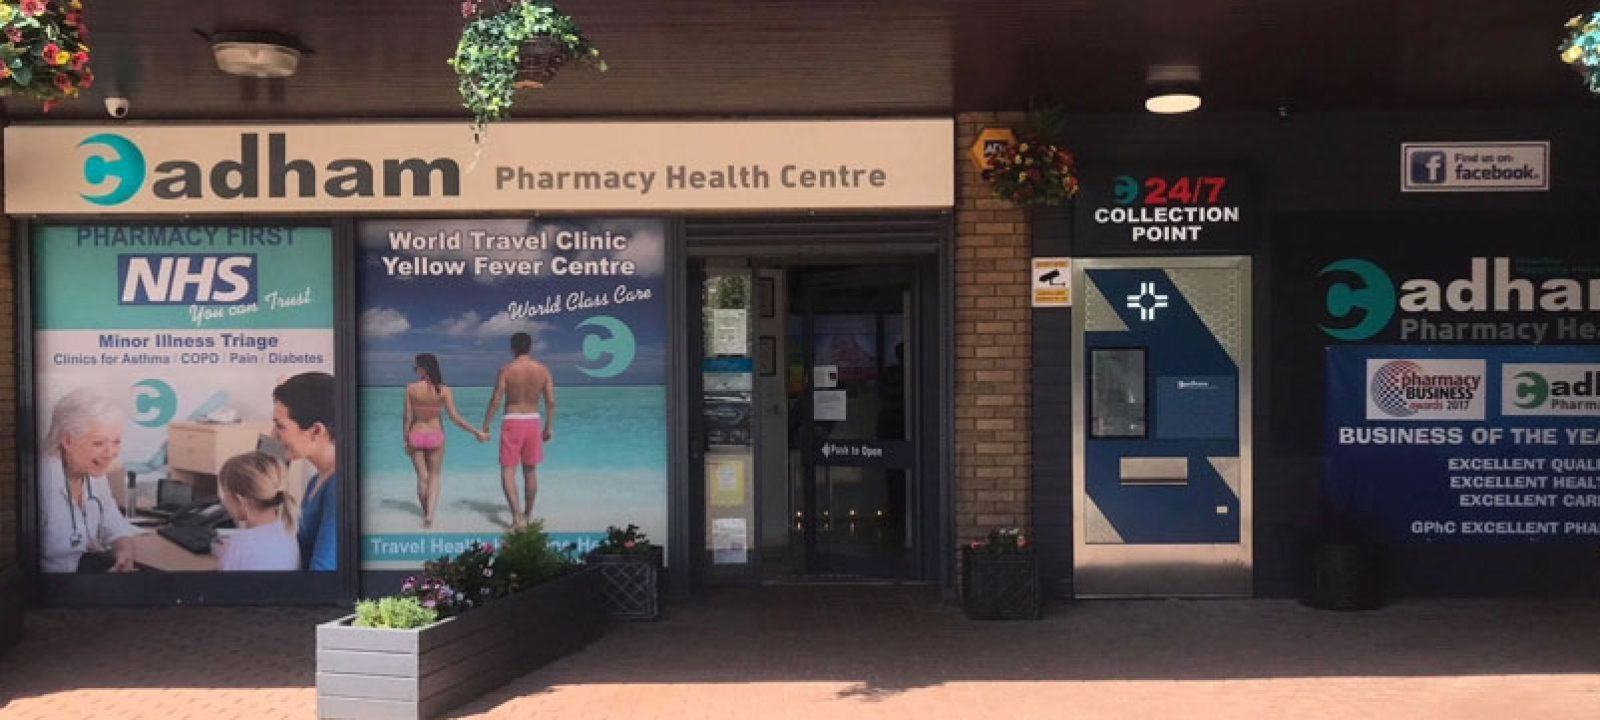 Treating asthma patients in a community pharmacy